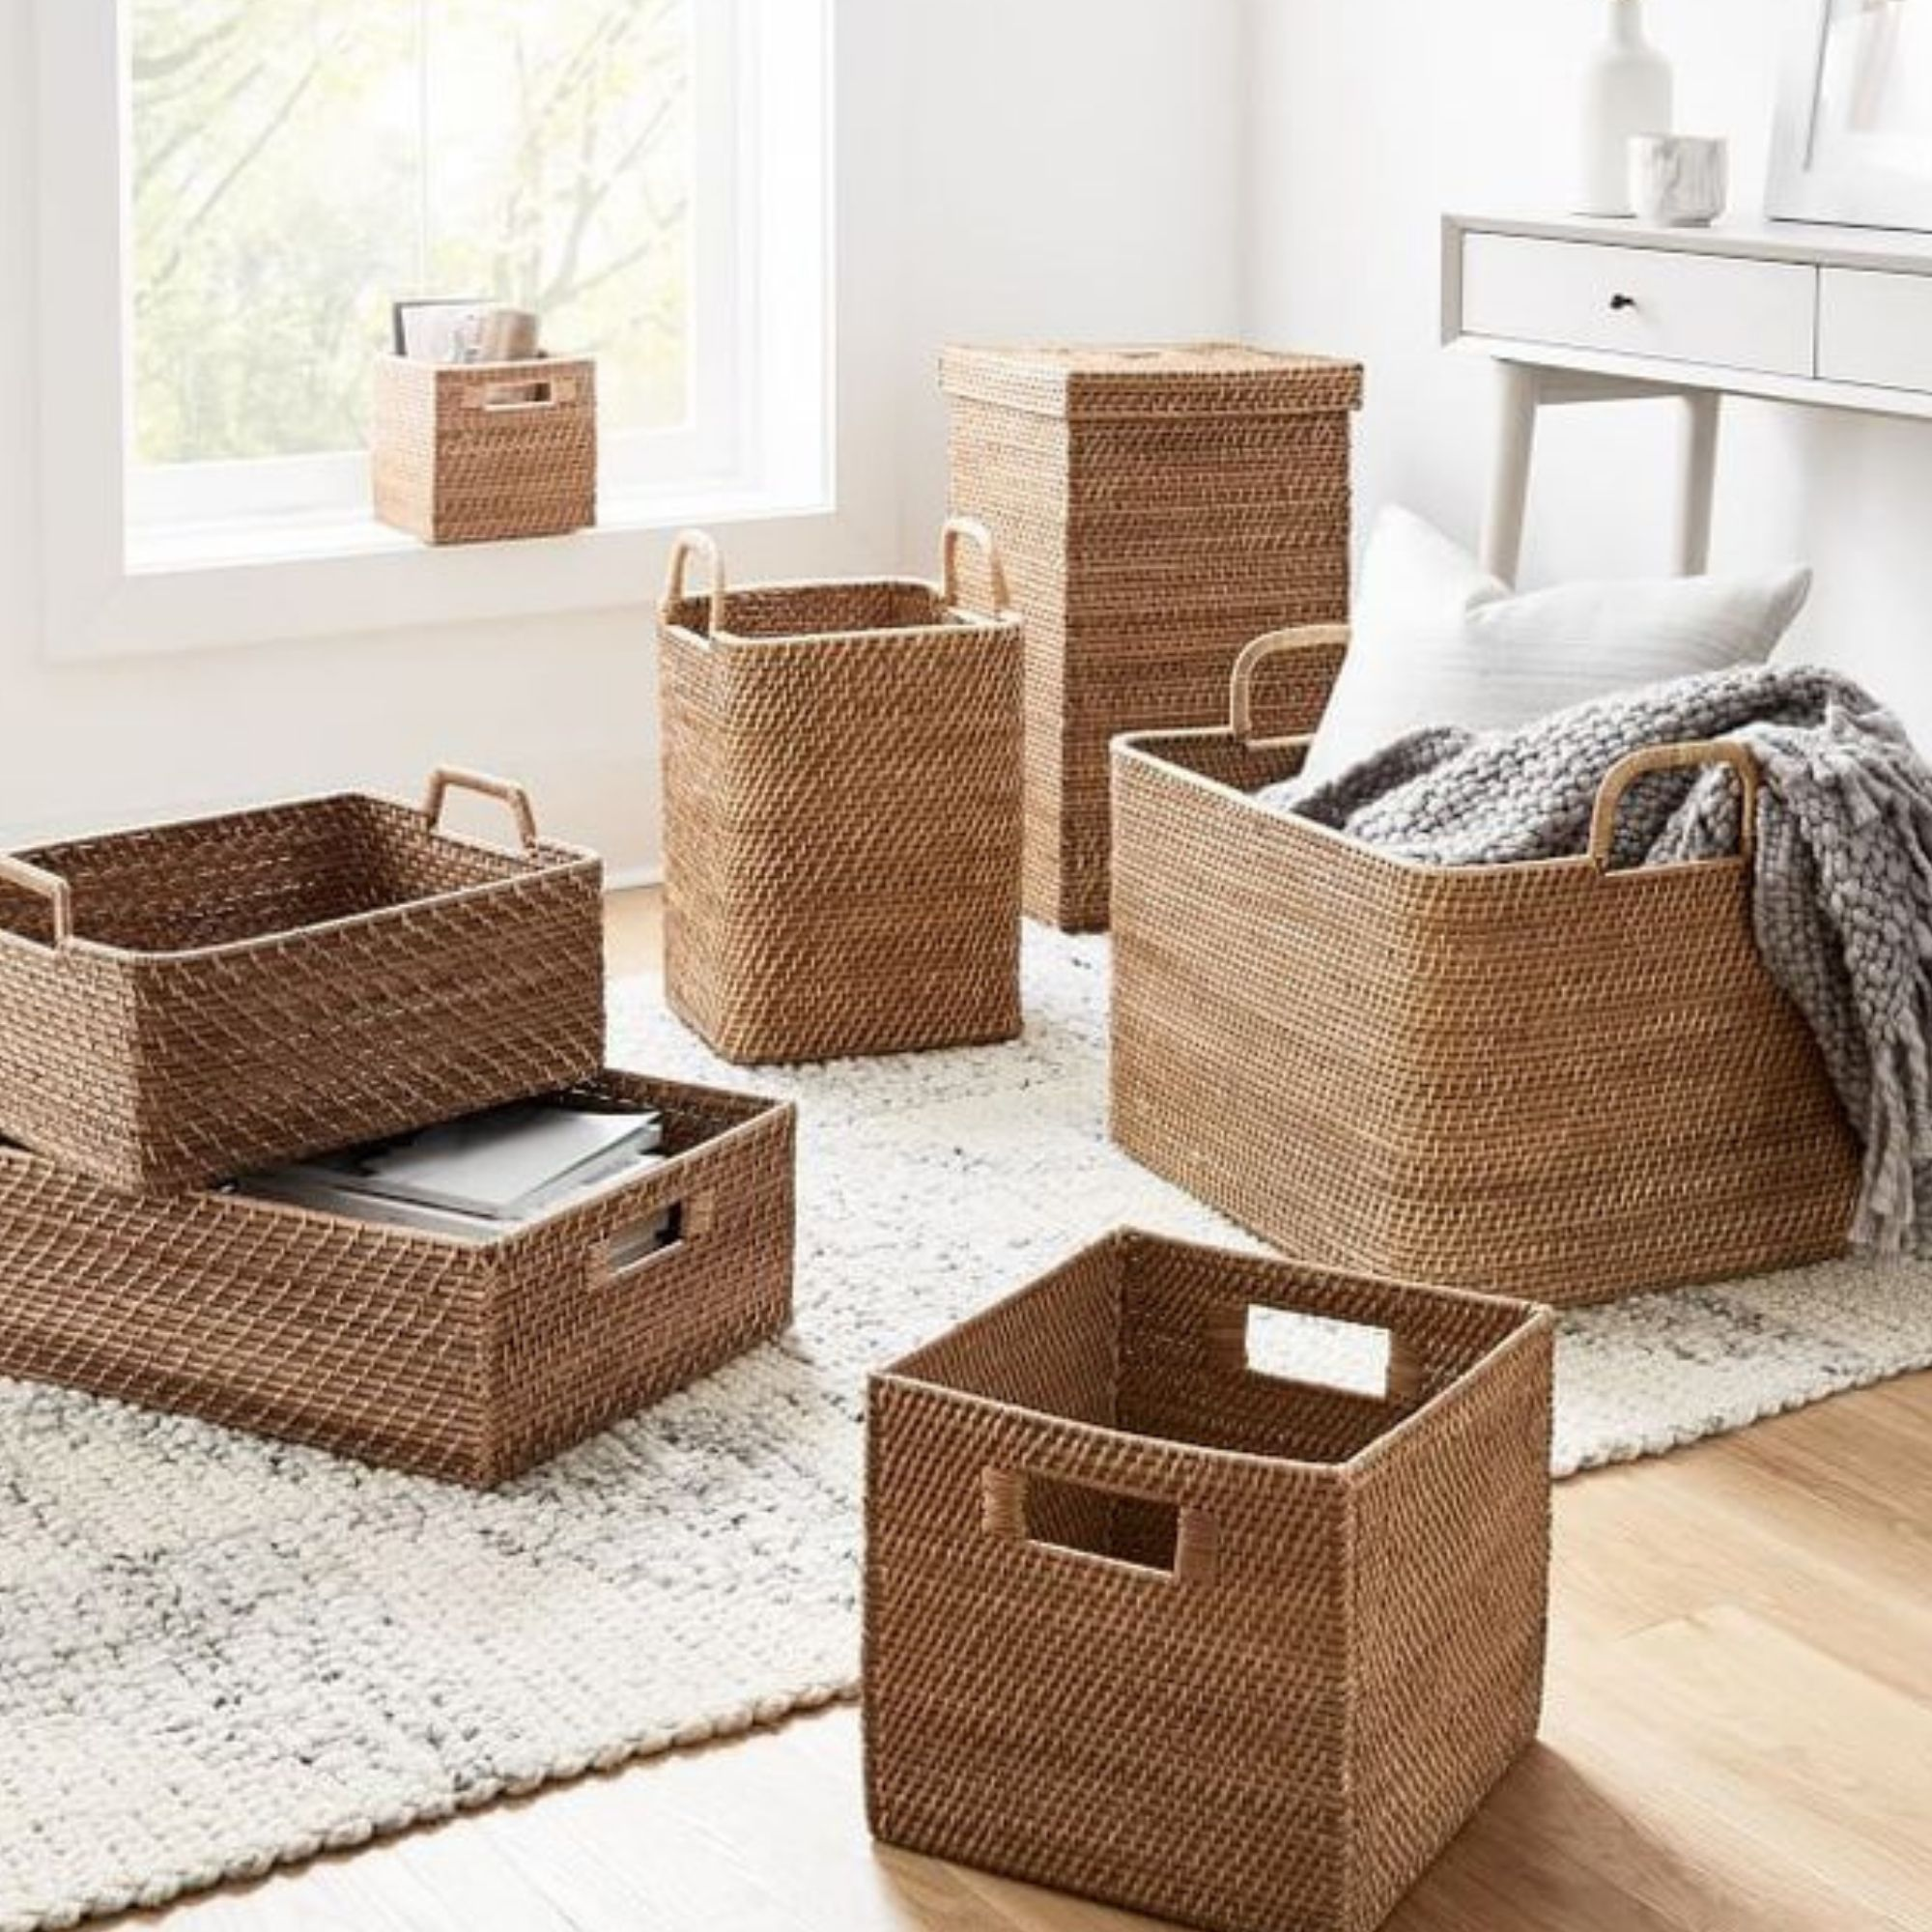 Brown wicker baskets stacked